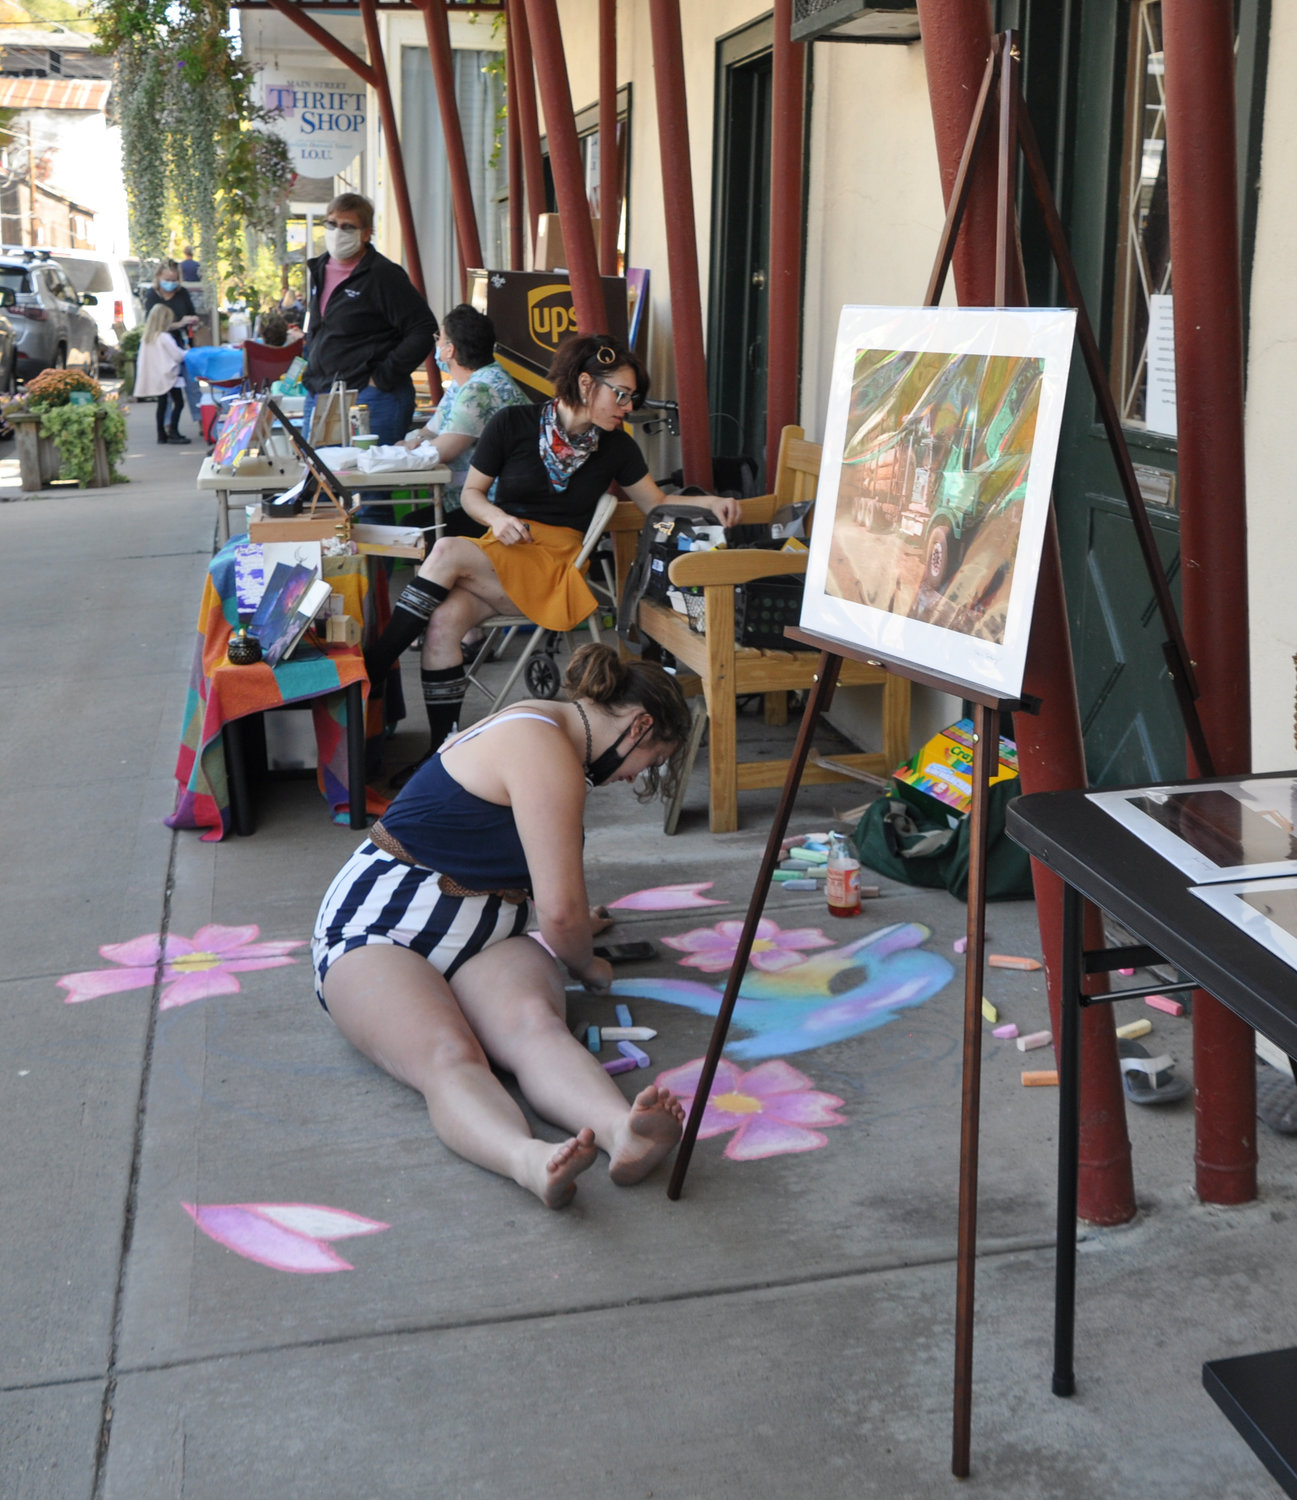 Artists lined the streets of Callicoon, NY last weekend where I observed some hard at work—from a distance, of course.